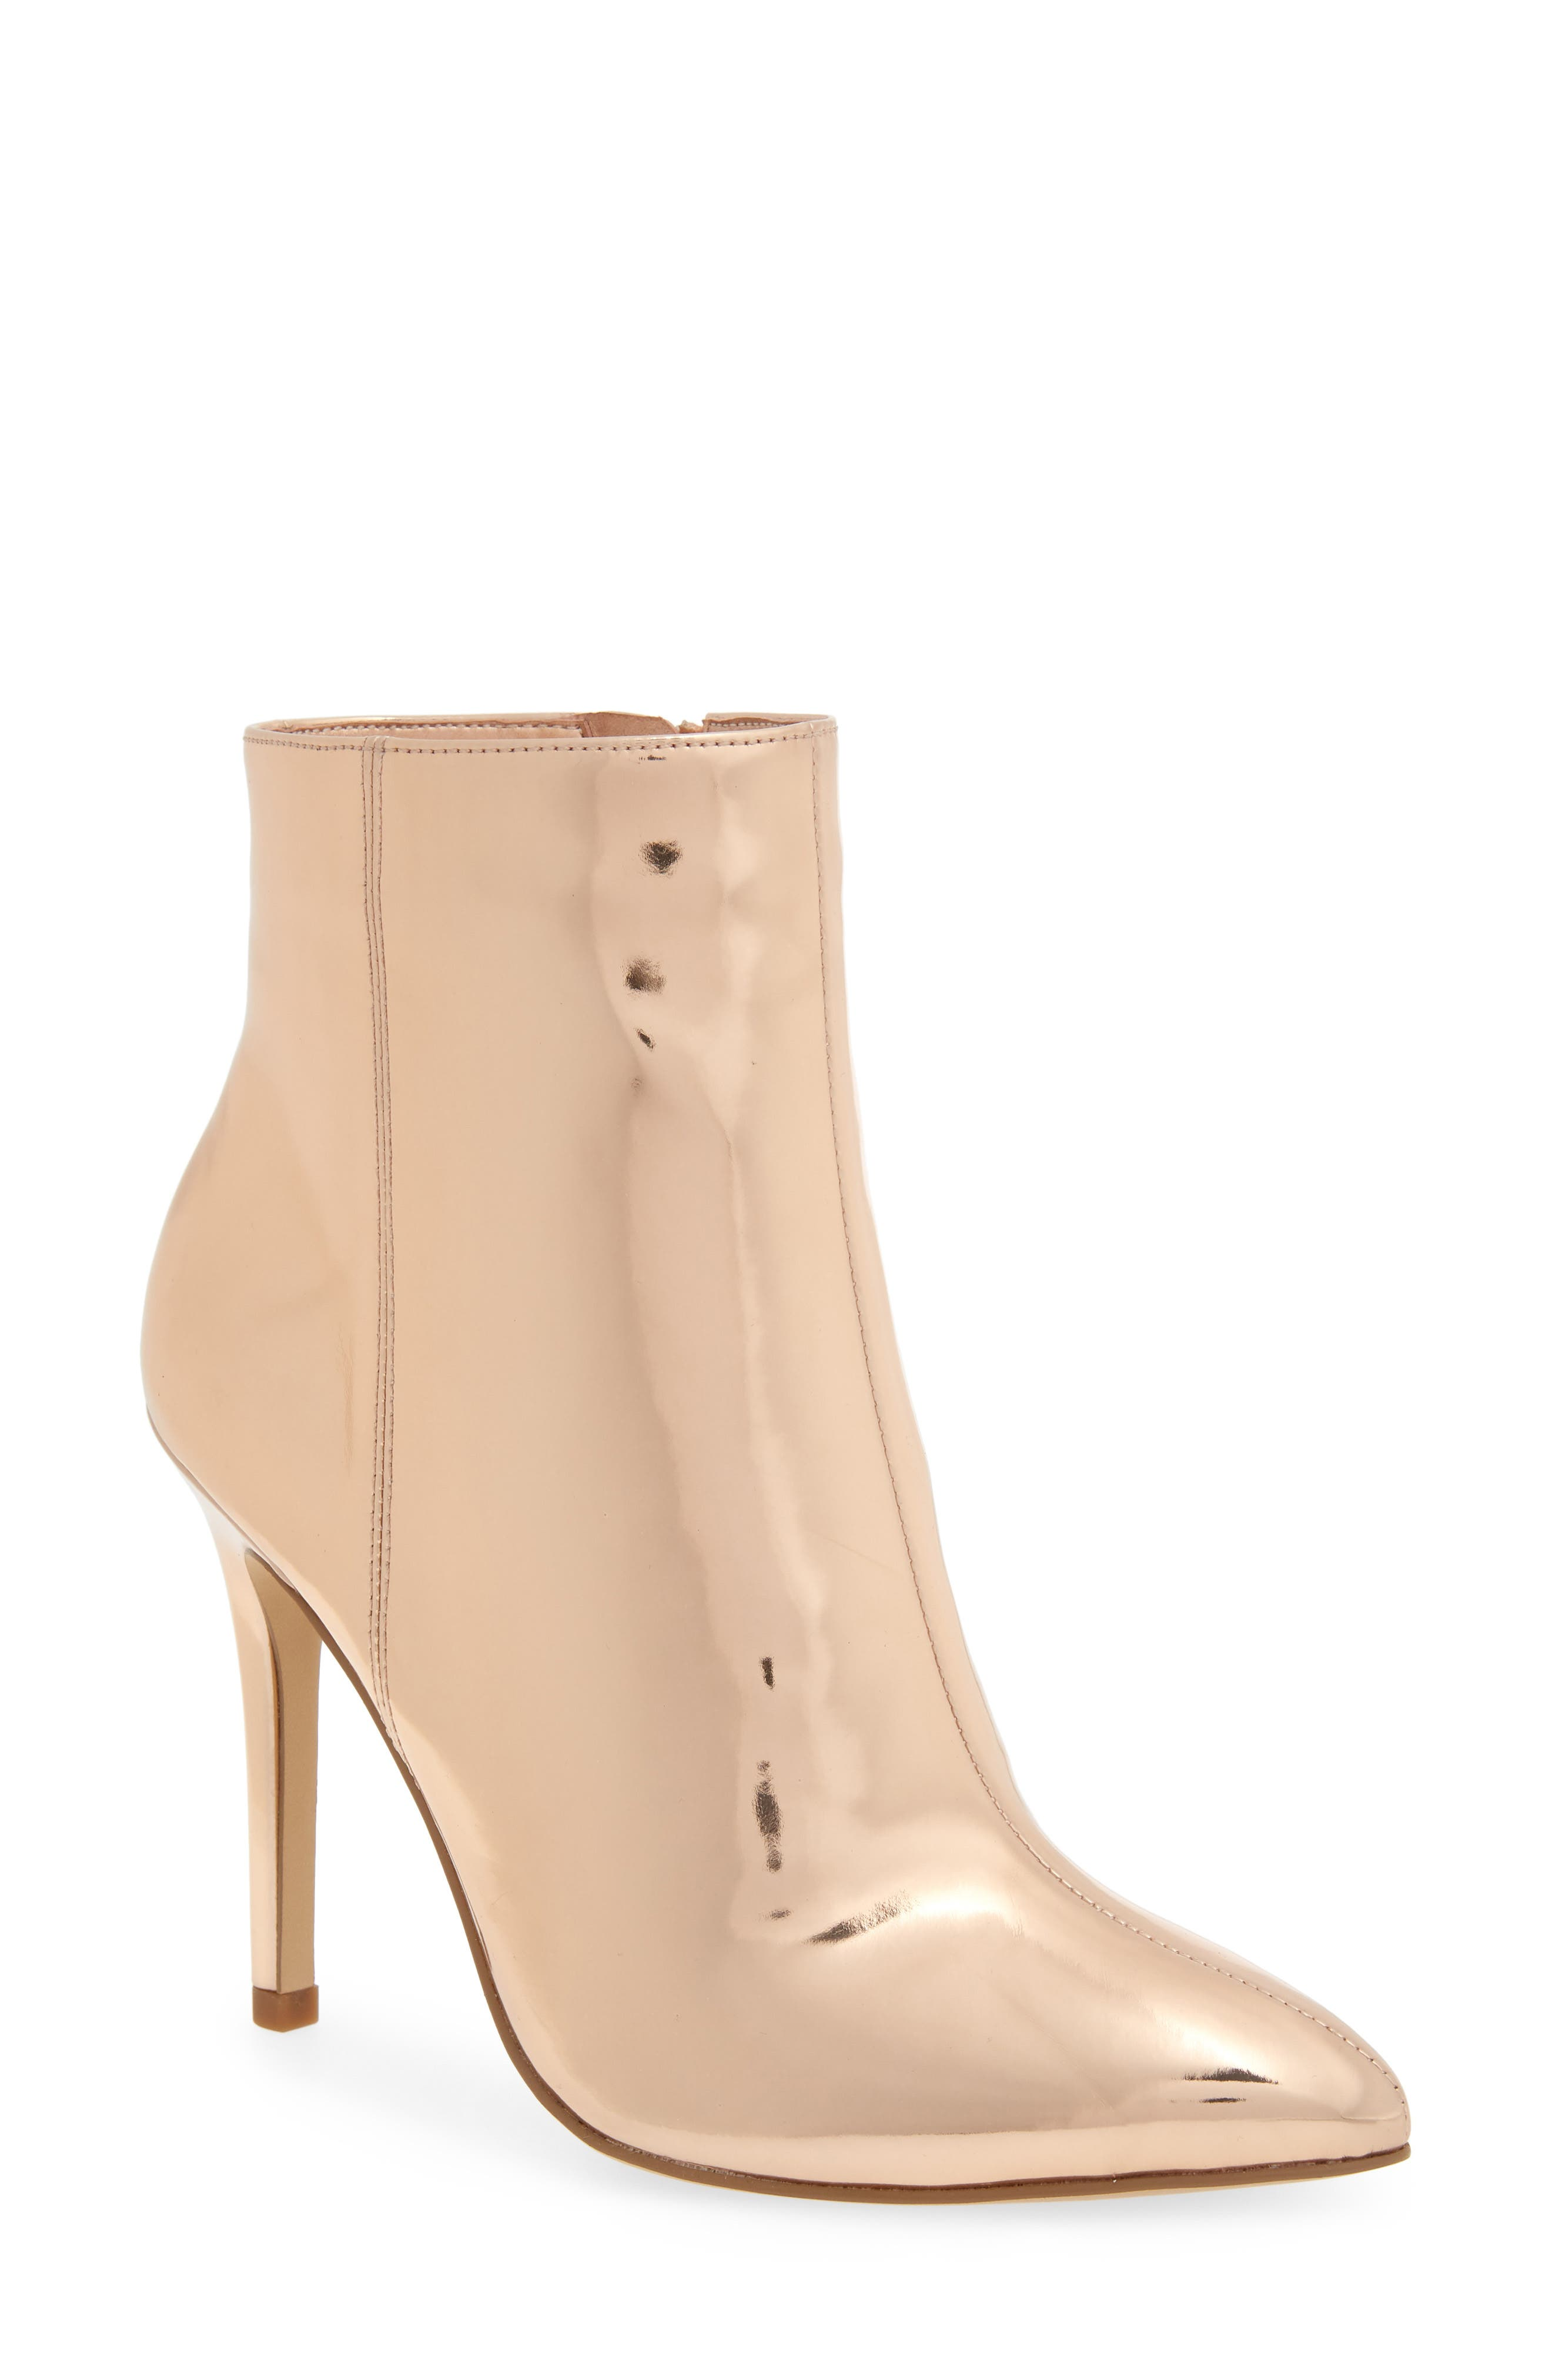 CHARLES BY CHARLES DAVID, Delicious Bootie, Main thumbnail 1, color, ROSE GOLD LEATHER